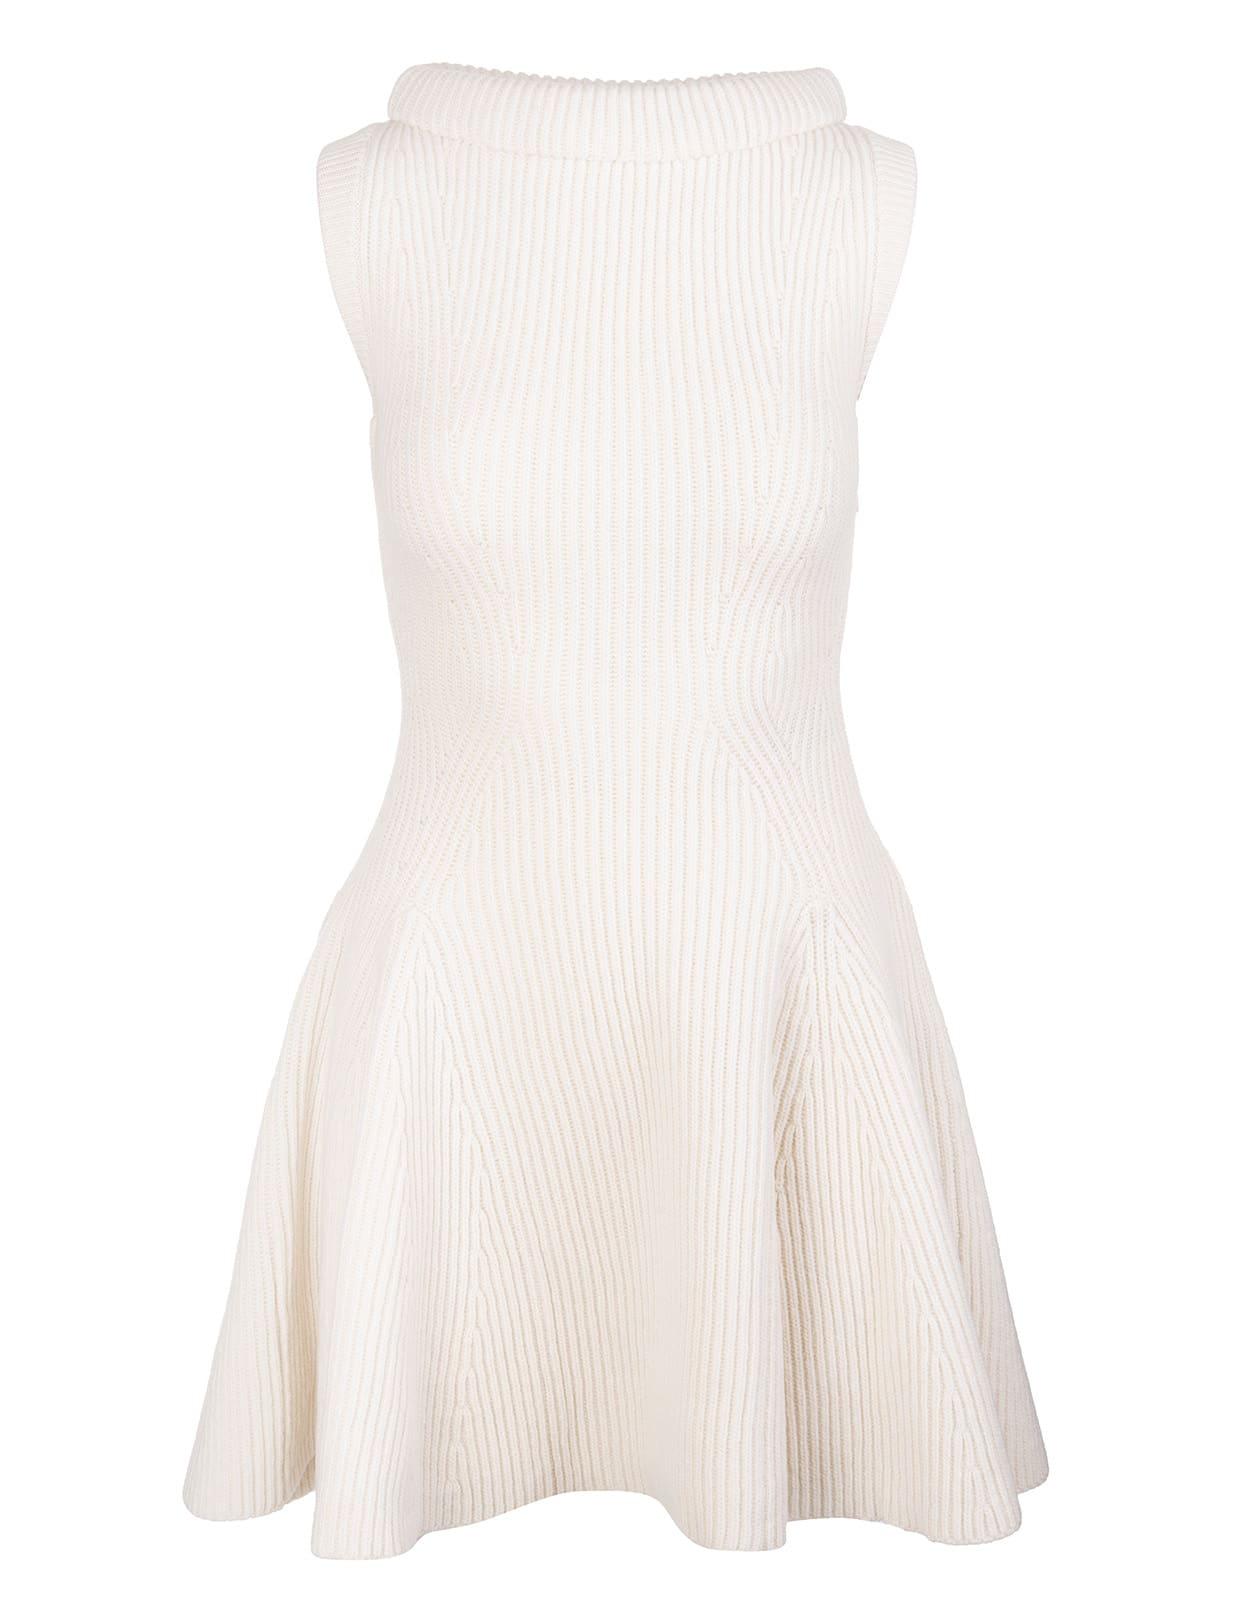 Ivory Short Dress In Ribbed Knit